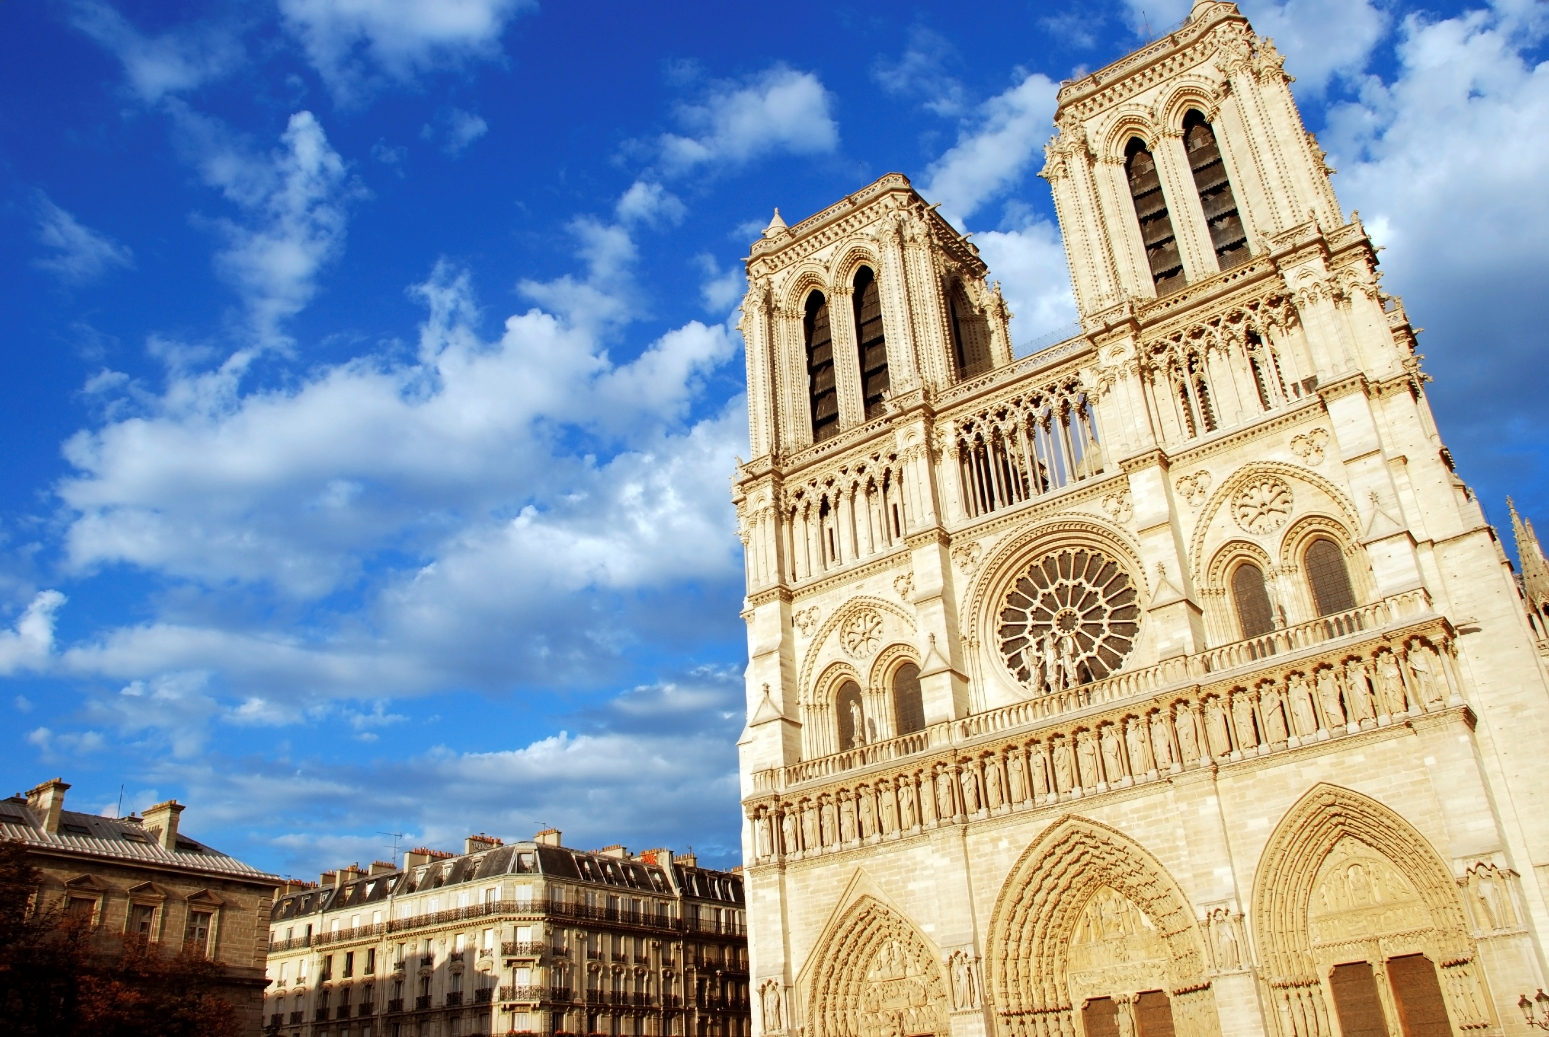 france_paris_notre_dame_istock_000005308930large.jpg